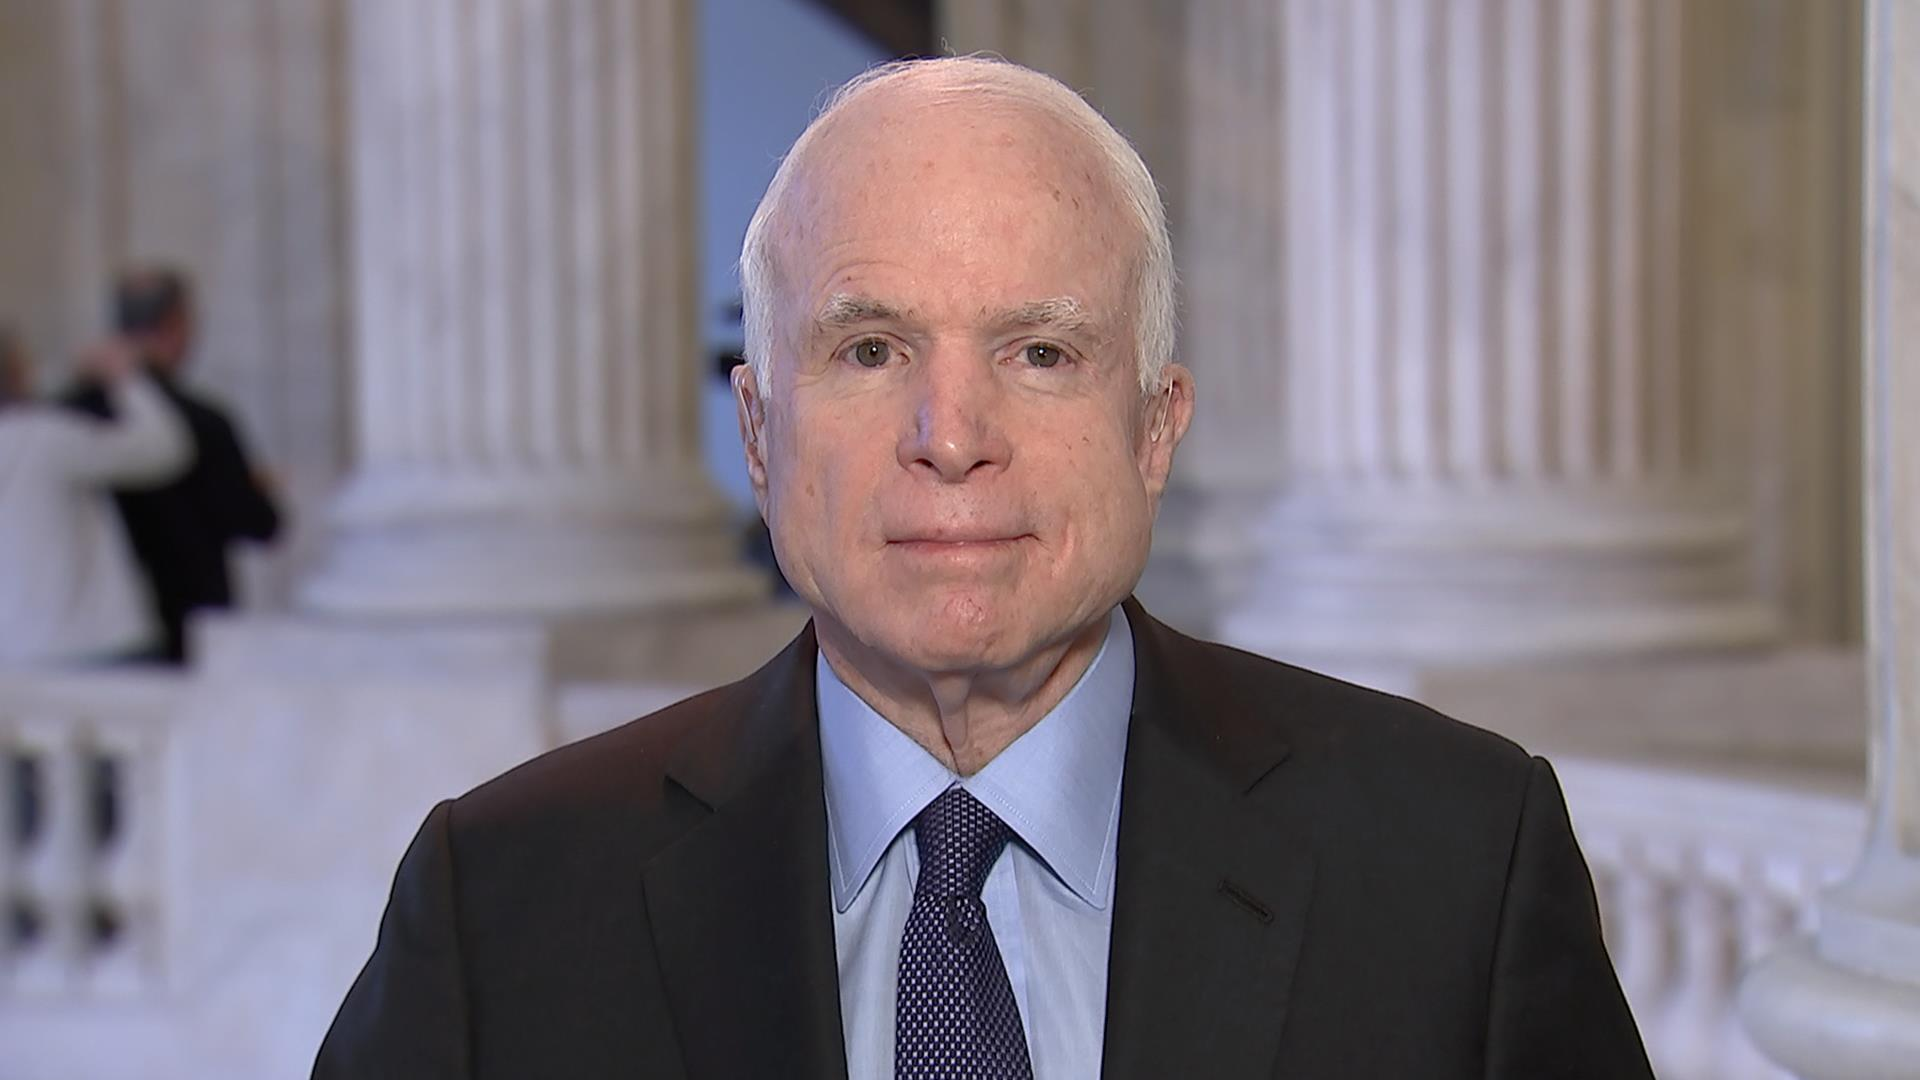 a biography of john mccain the senator of arizona A multi-term republican senator from arizona, john mccain netted broadest public awareness via his successful bid for the 2008 gop presidential nomination -- and subsequent presidential candidacy.